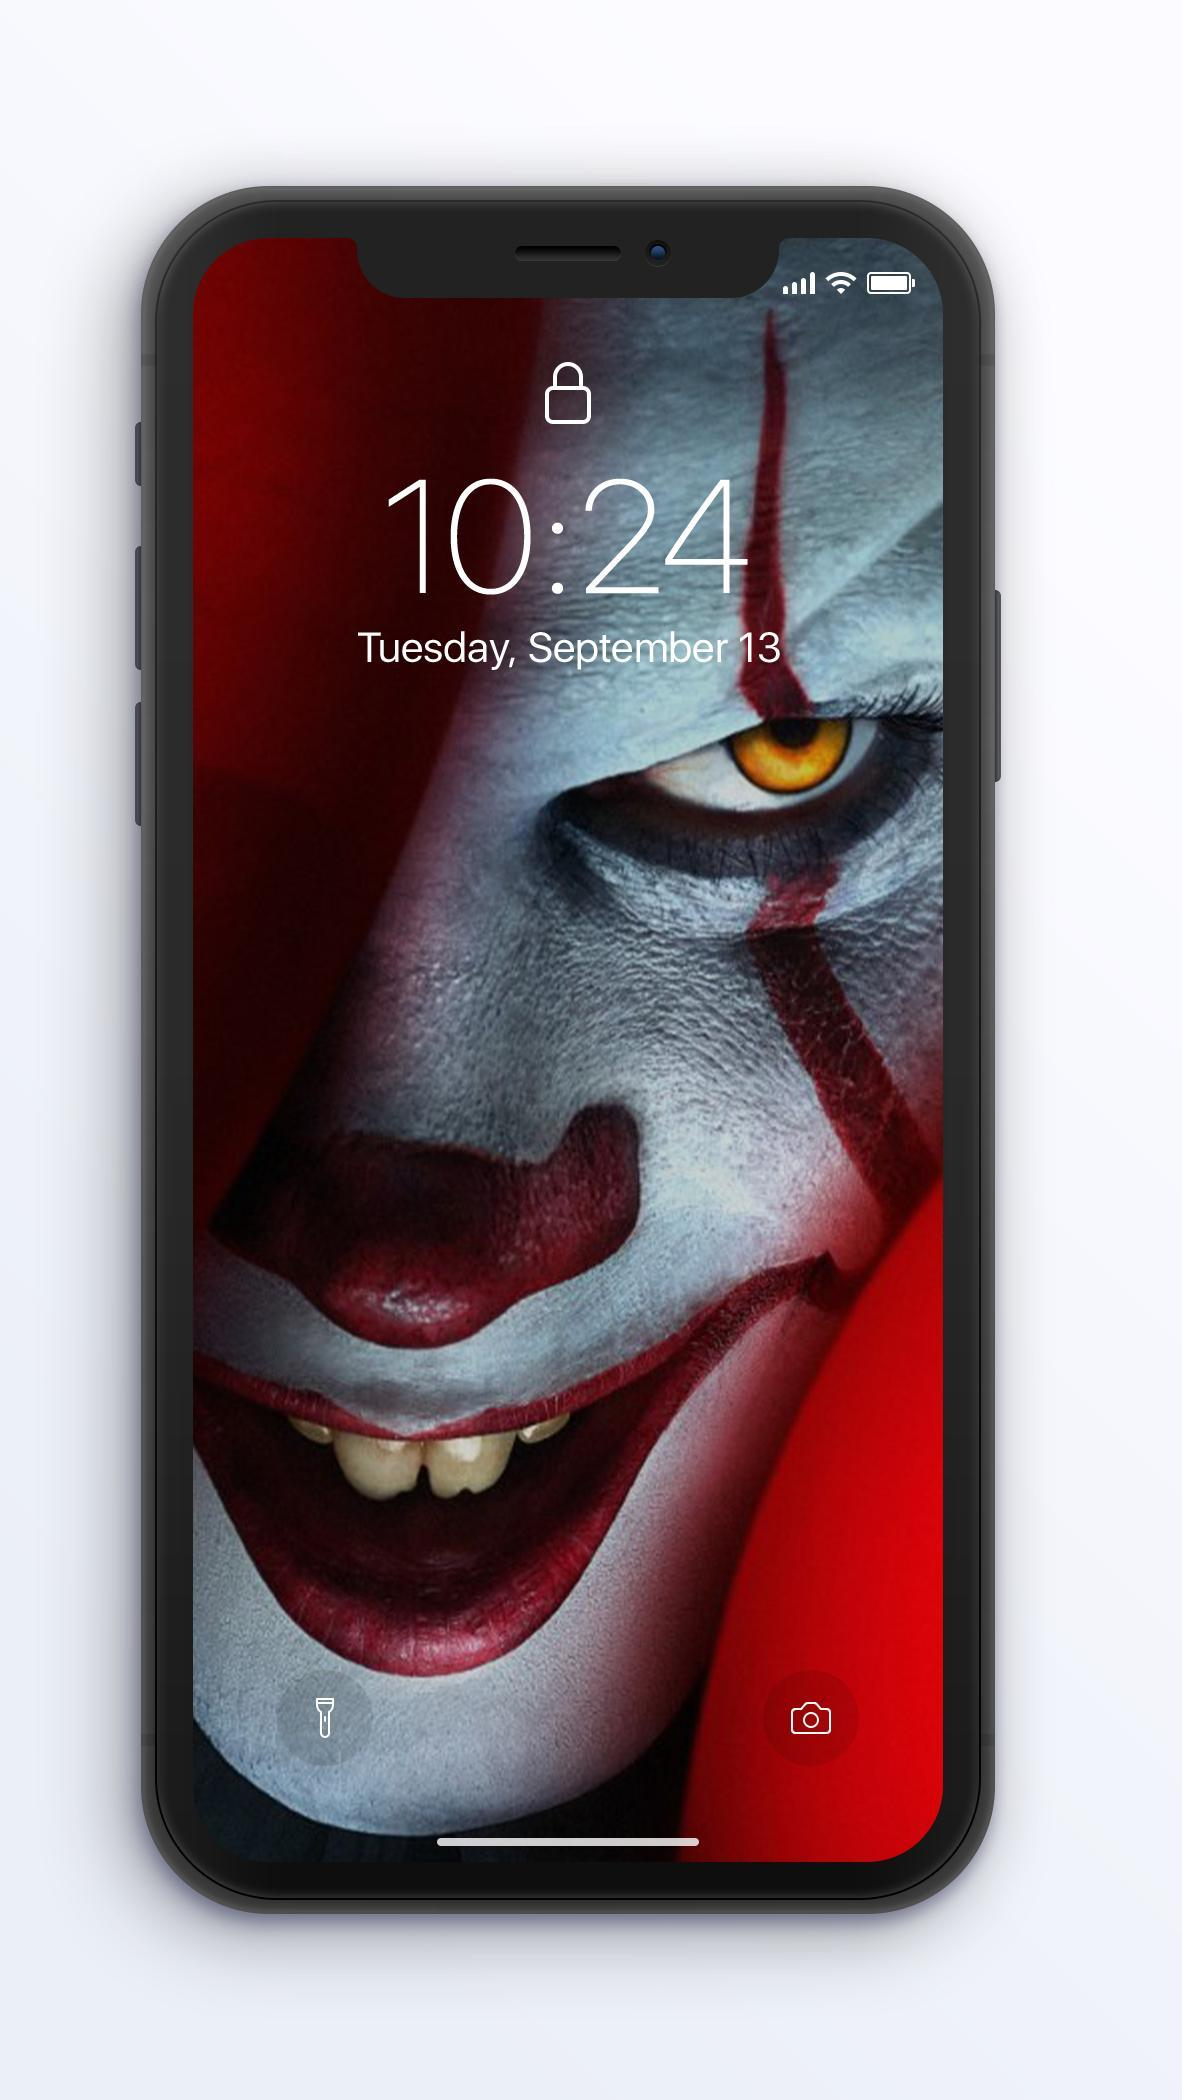 It Wallpaper Hd And Pennywise Wallpaper Hd 4k 2020 For Android